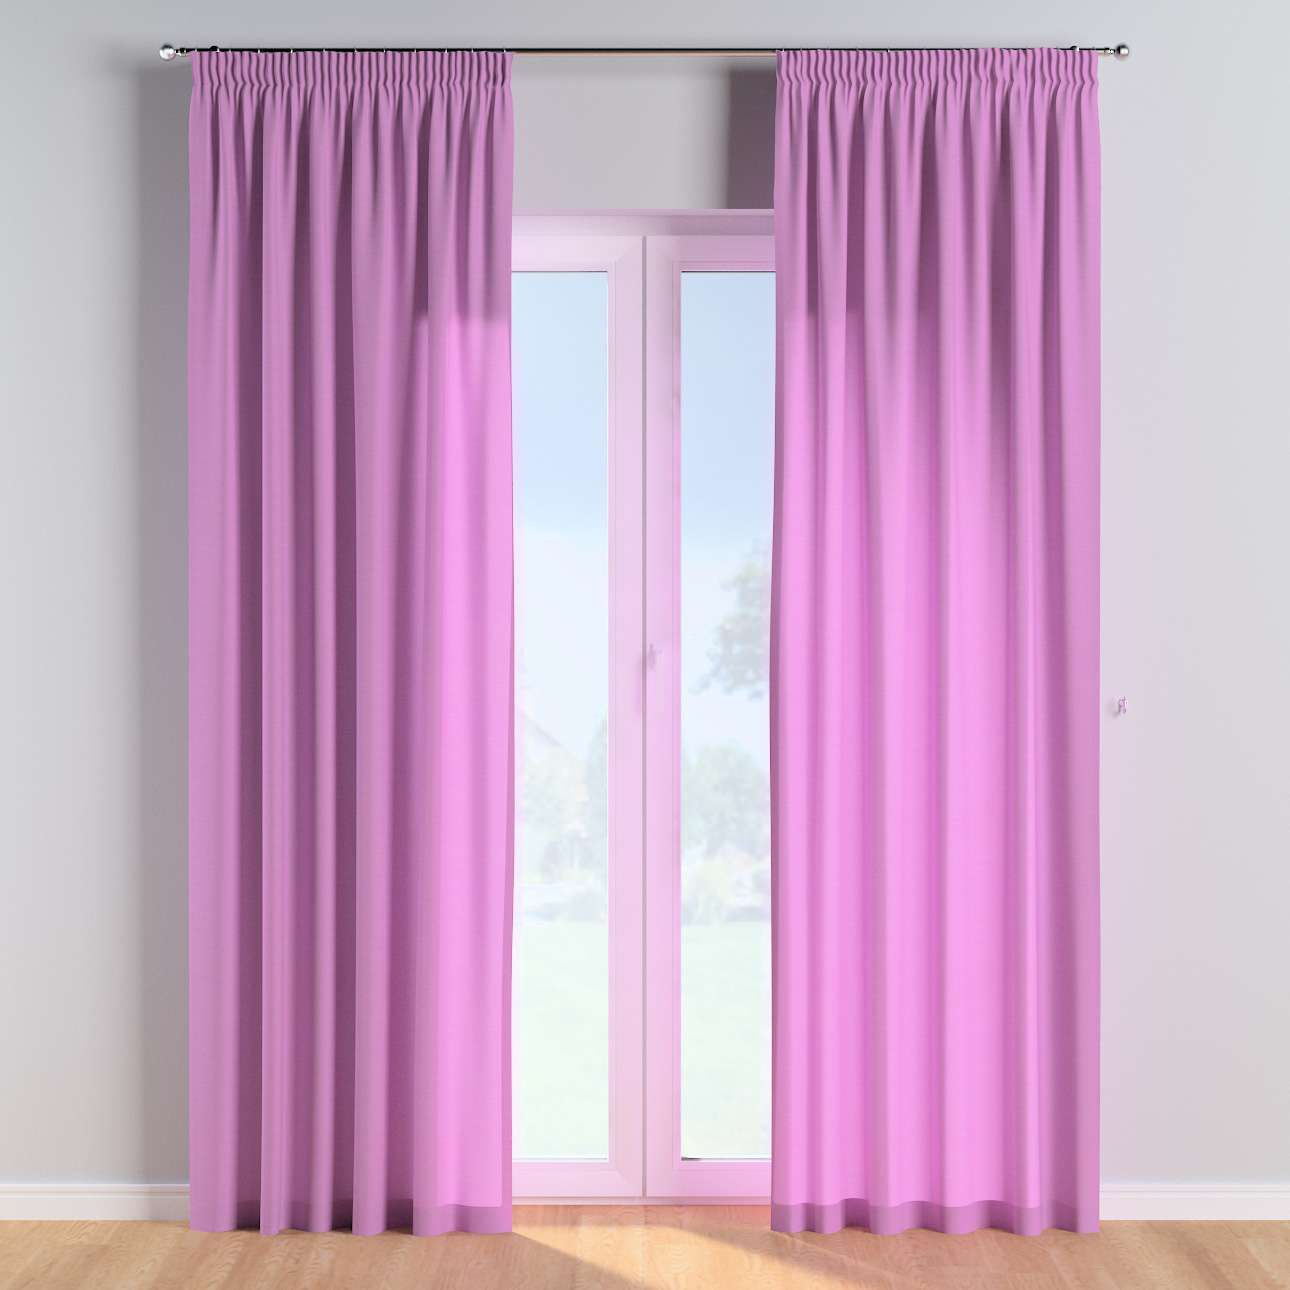 Pencil pleat curtains in collection Happiness, fabric: 133-38